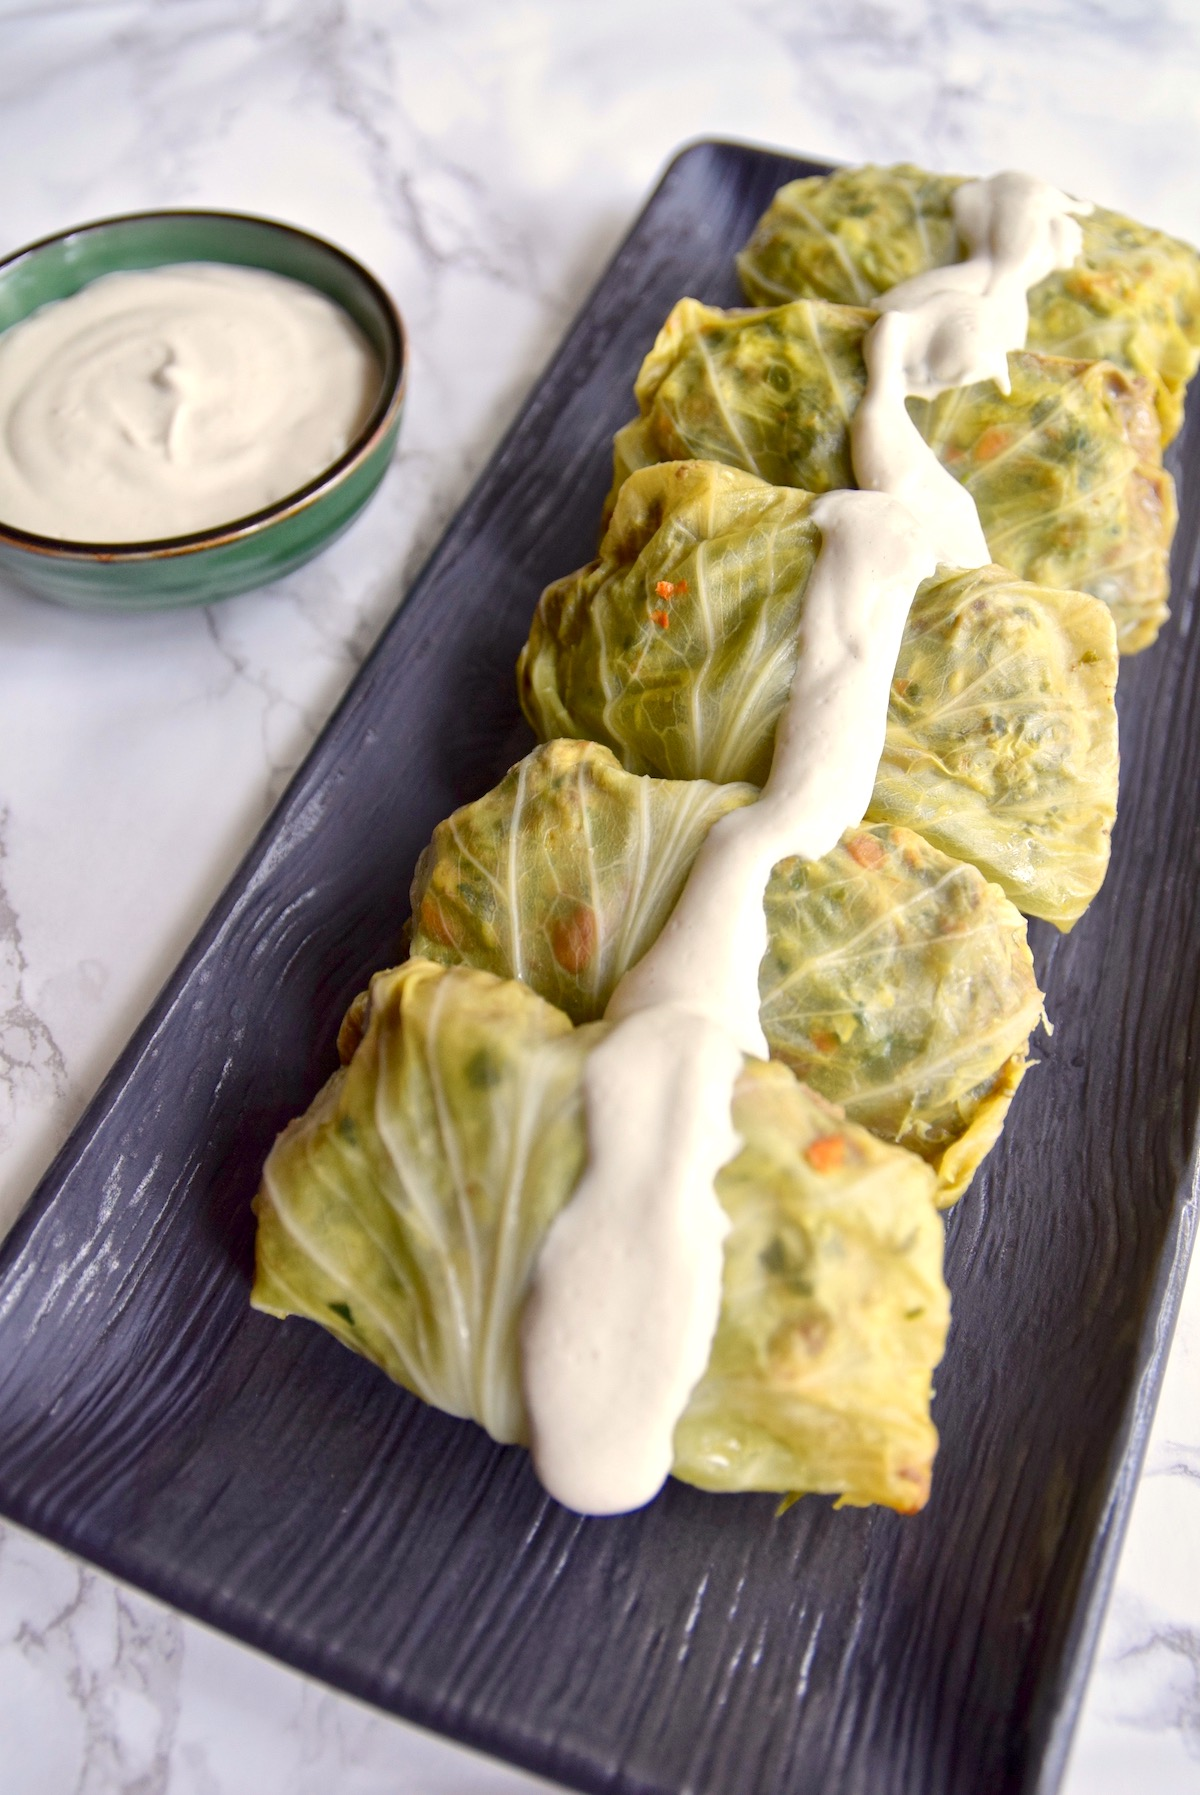 This tomato-less stuffed cabbage with cashew cream is great for St. Patrick's Day or any day of the year. It's dairy free, rice free and night shade free so great for AIP Paleo or a healthy meal | TastingPage.com